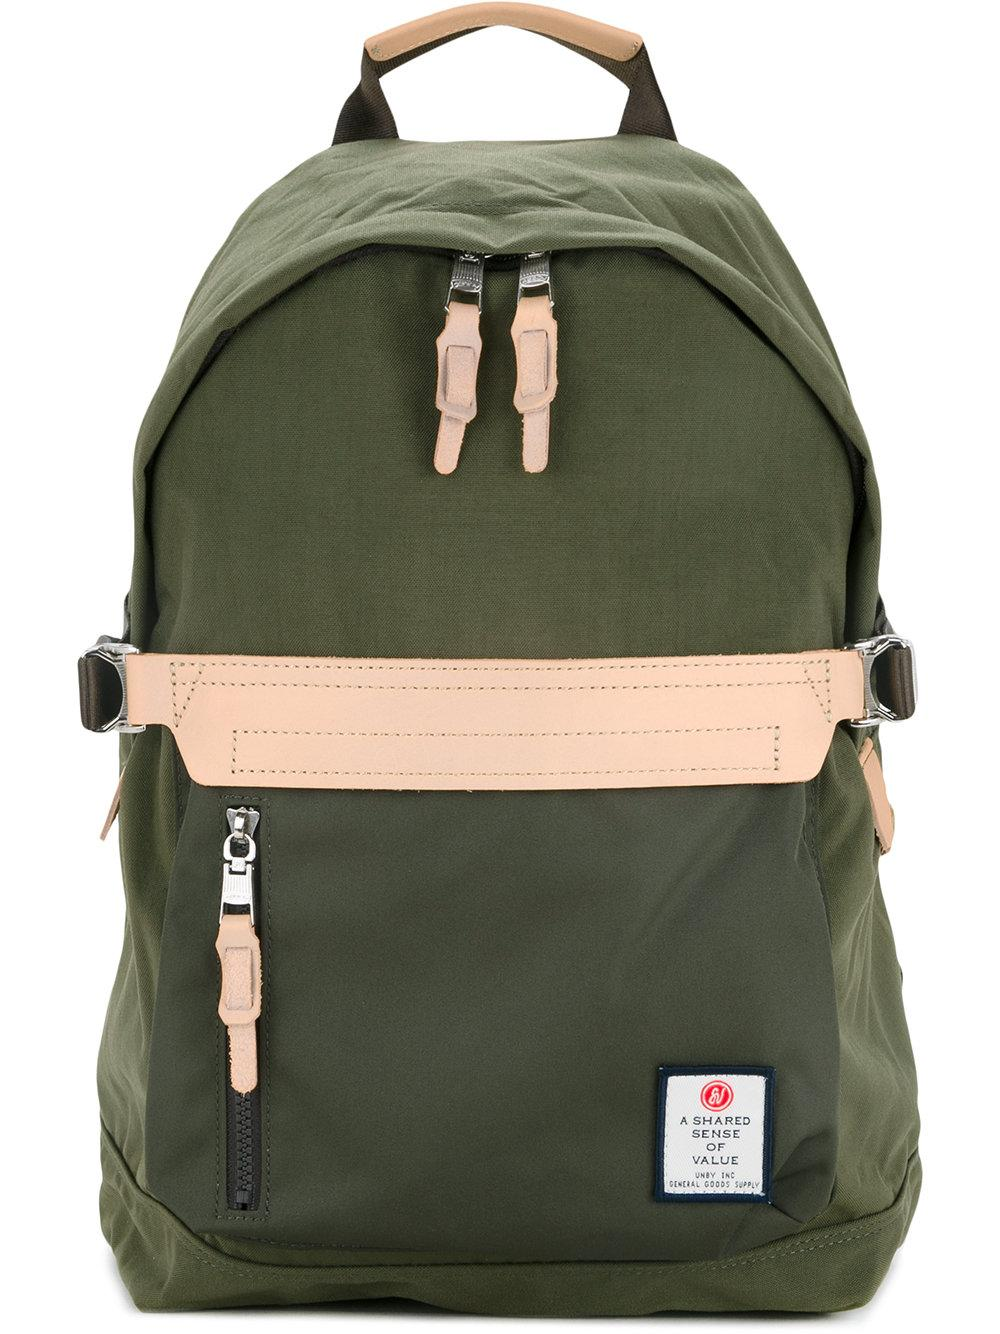 As2ov Front Zip Backpack In Green For Men | Lyst